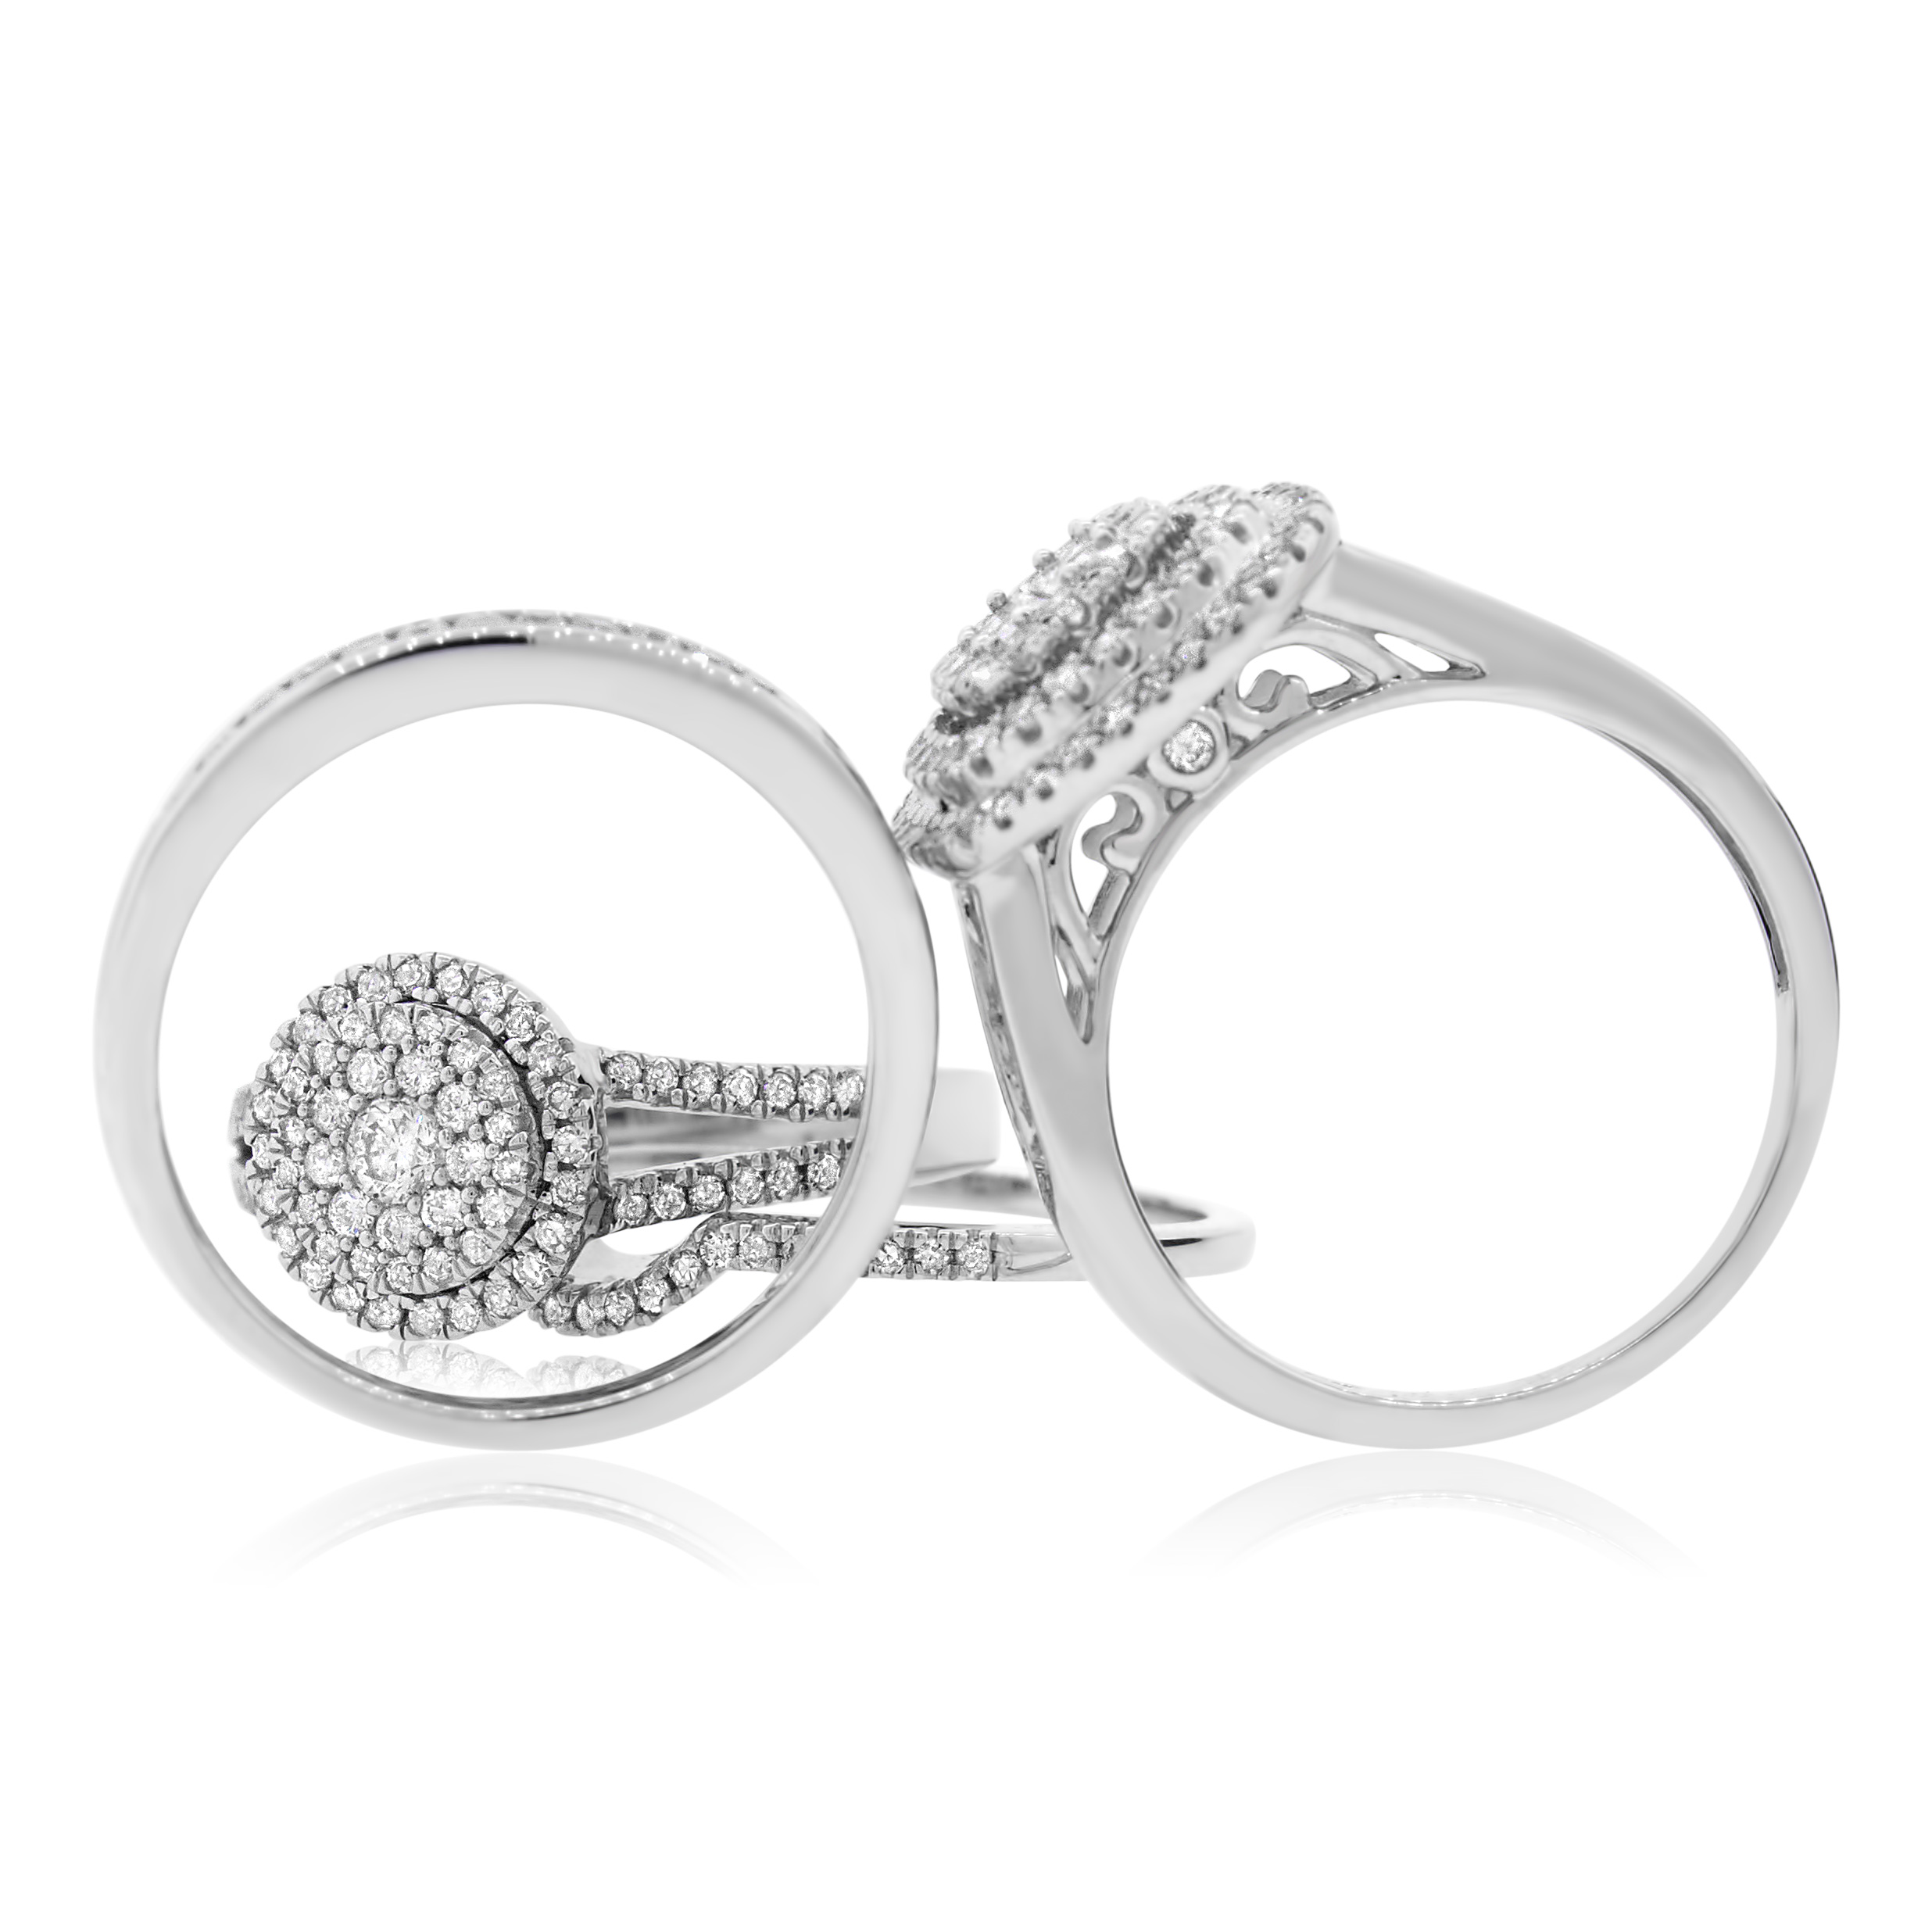 How Are Rings Resized?